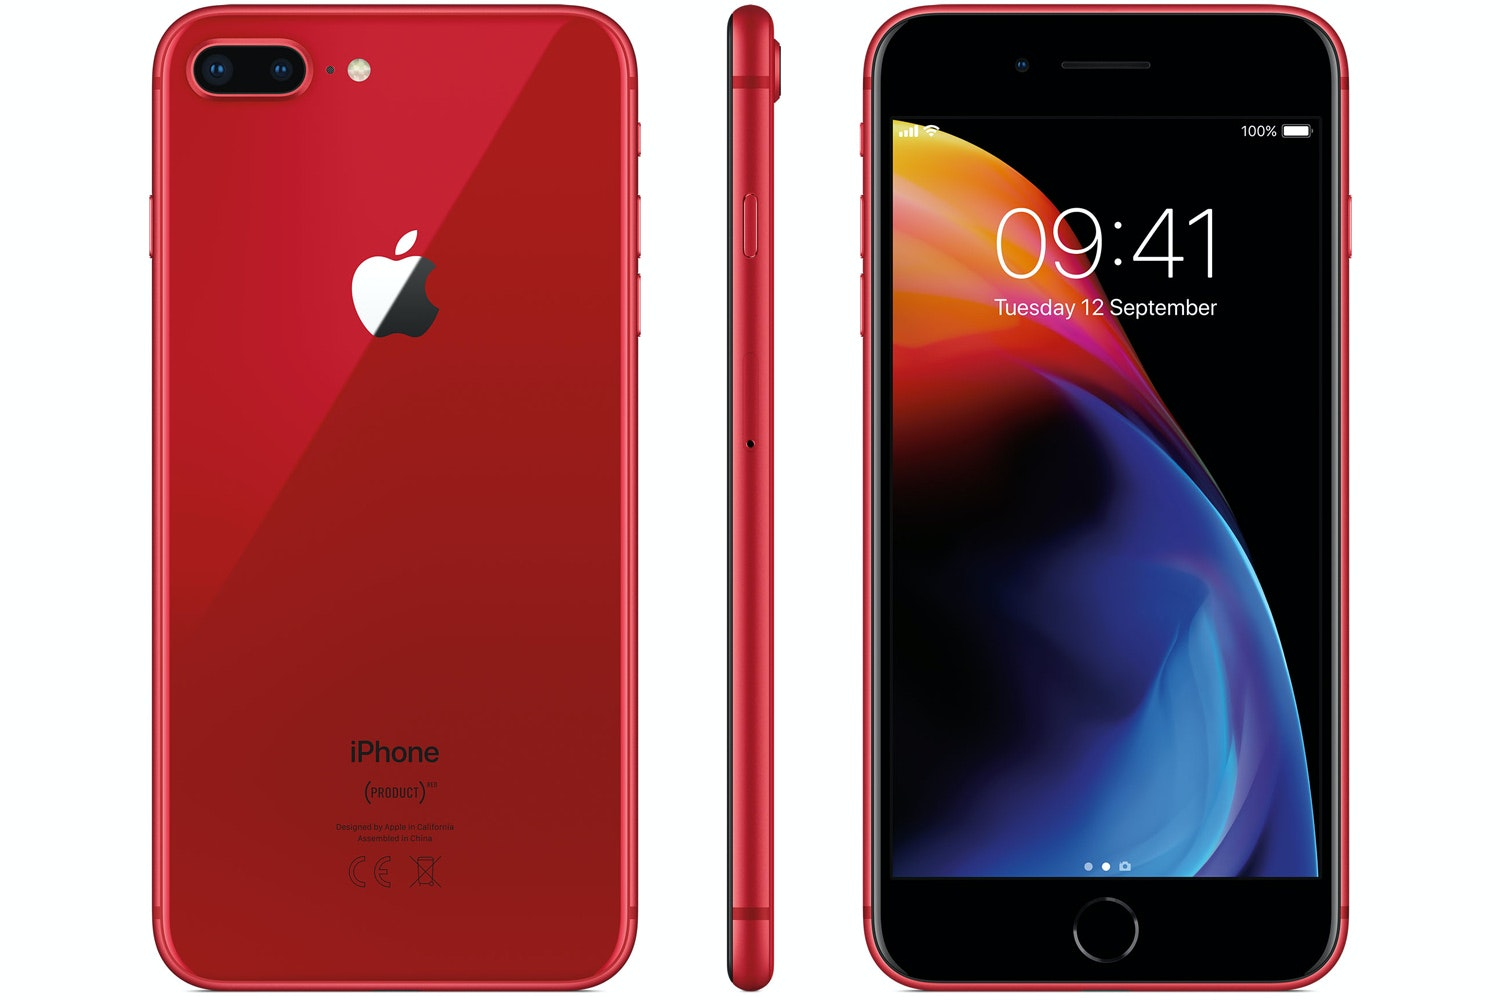 iPhone 8 Plus (PRODUCT)Red Special Edition 64GB